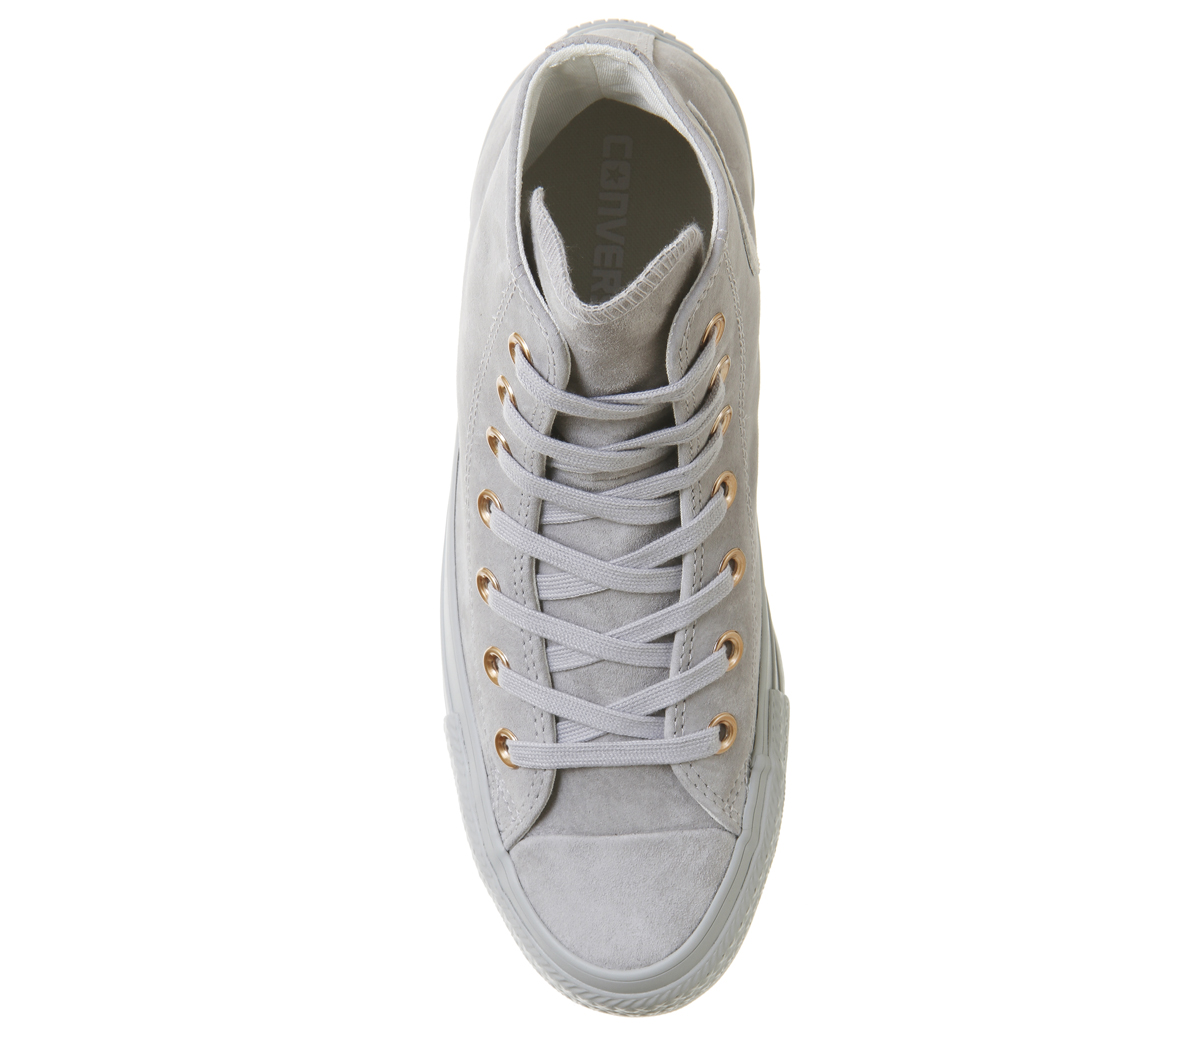 Details about Womens Converse All Star Hi Leather ASH GREY ROSE GOLD  Trainers Shoes dd1551e12